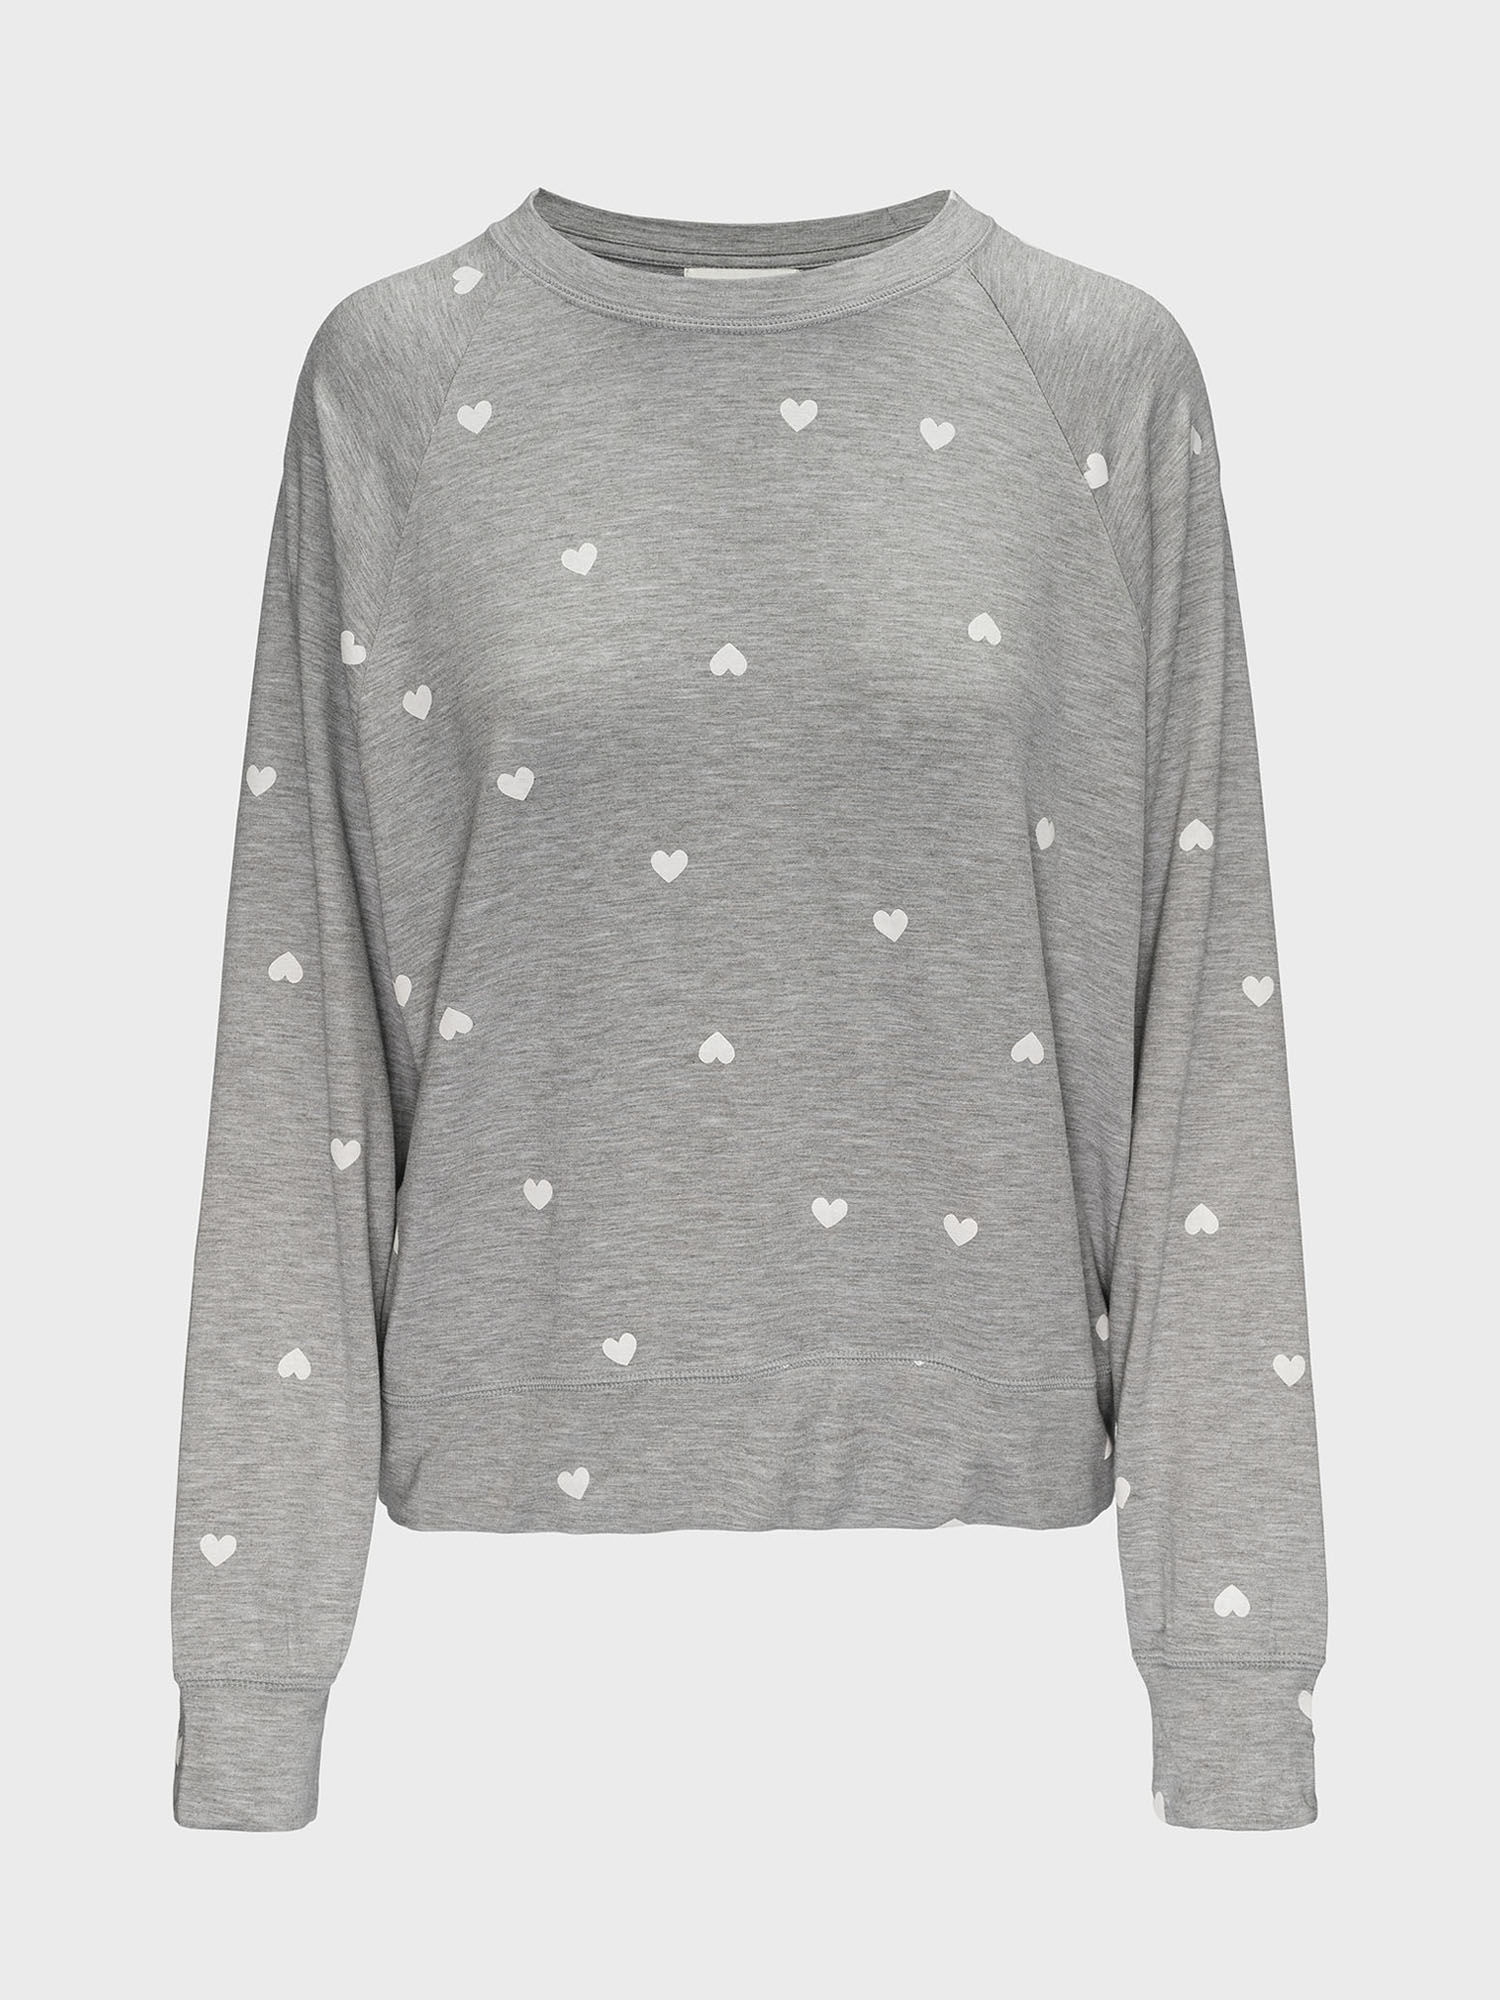 Tričko na spanie supersoft lightweight crewneck (1)